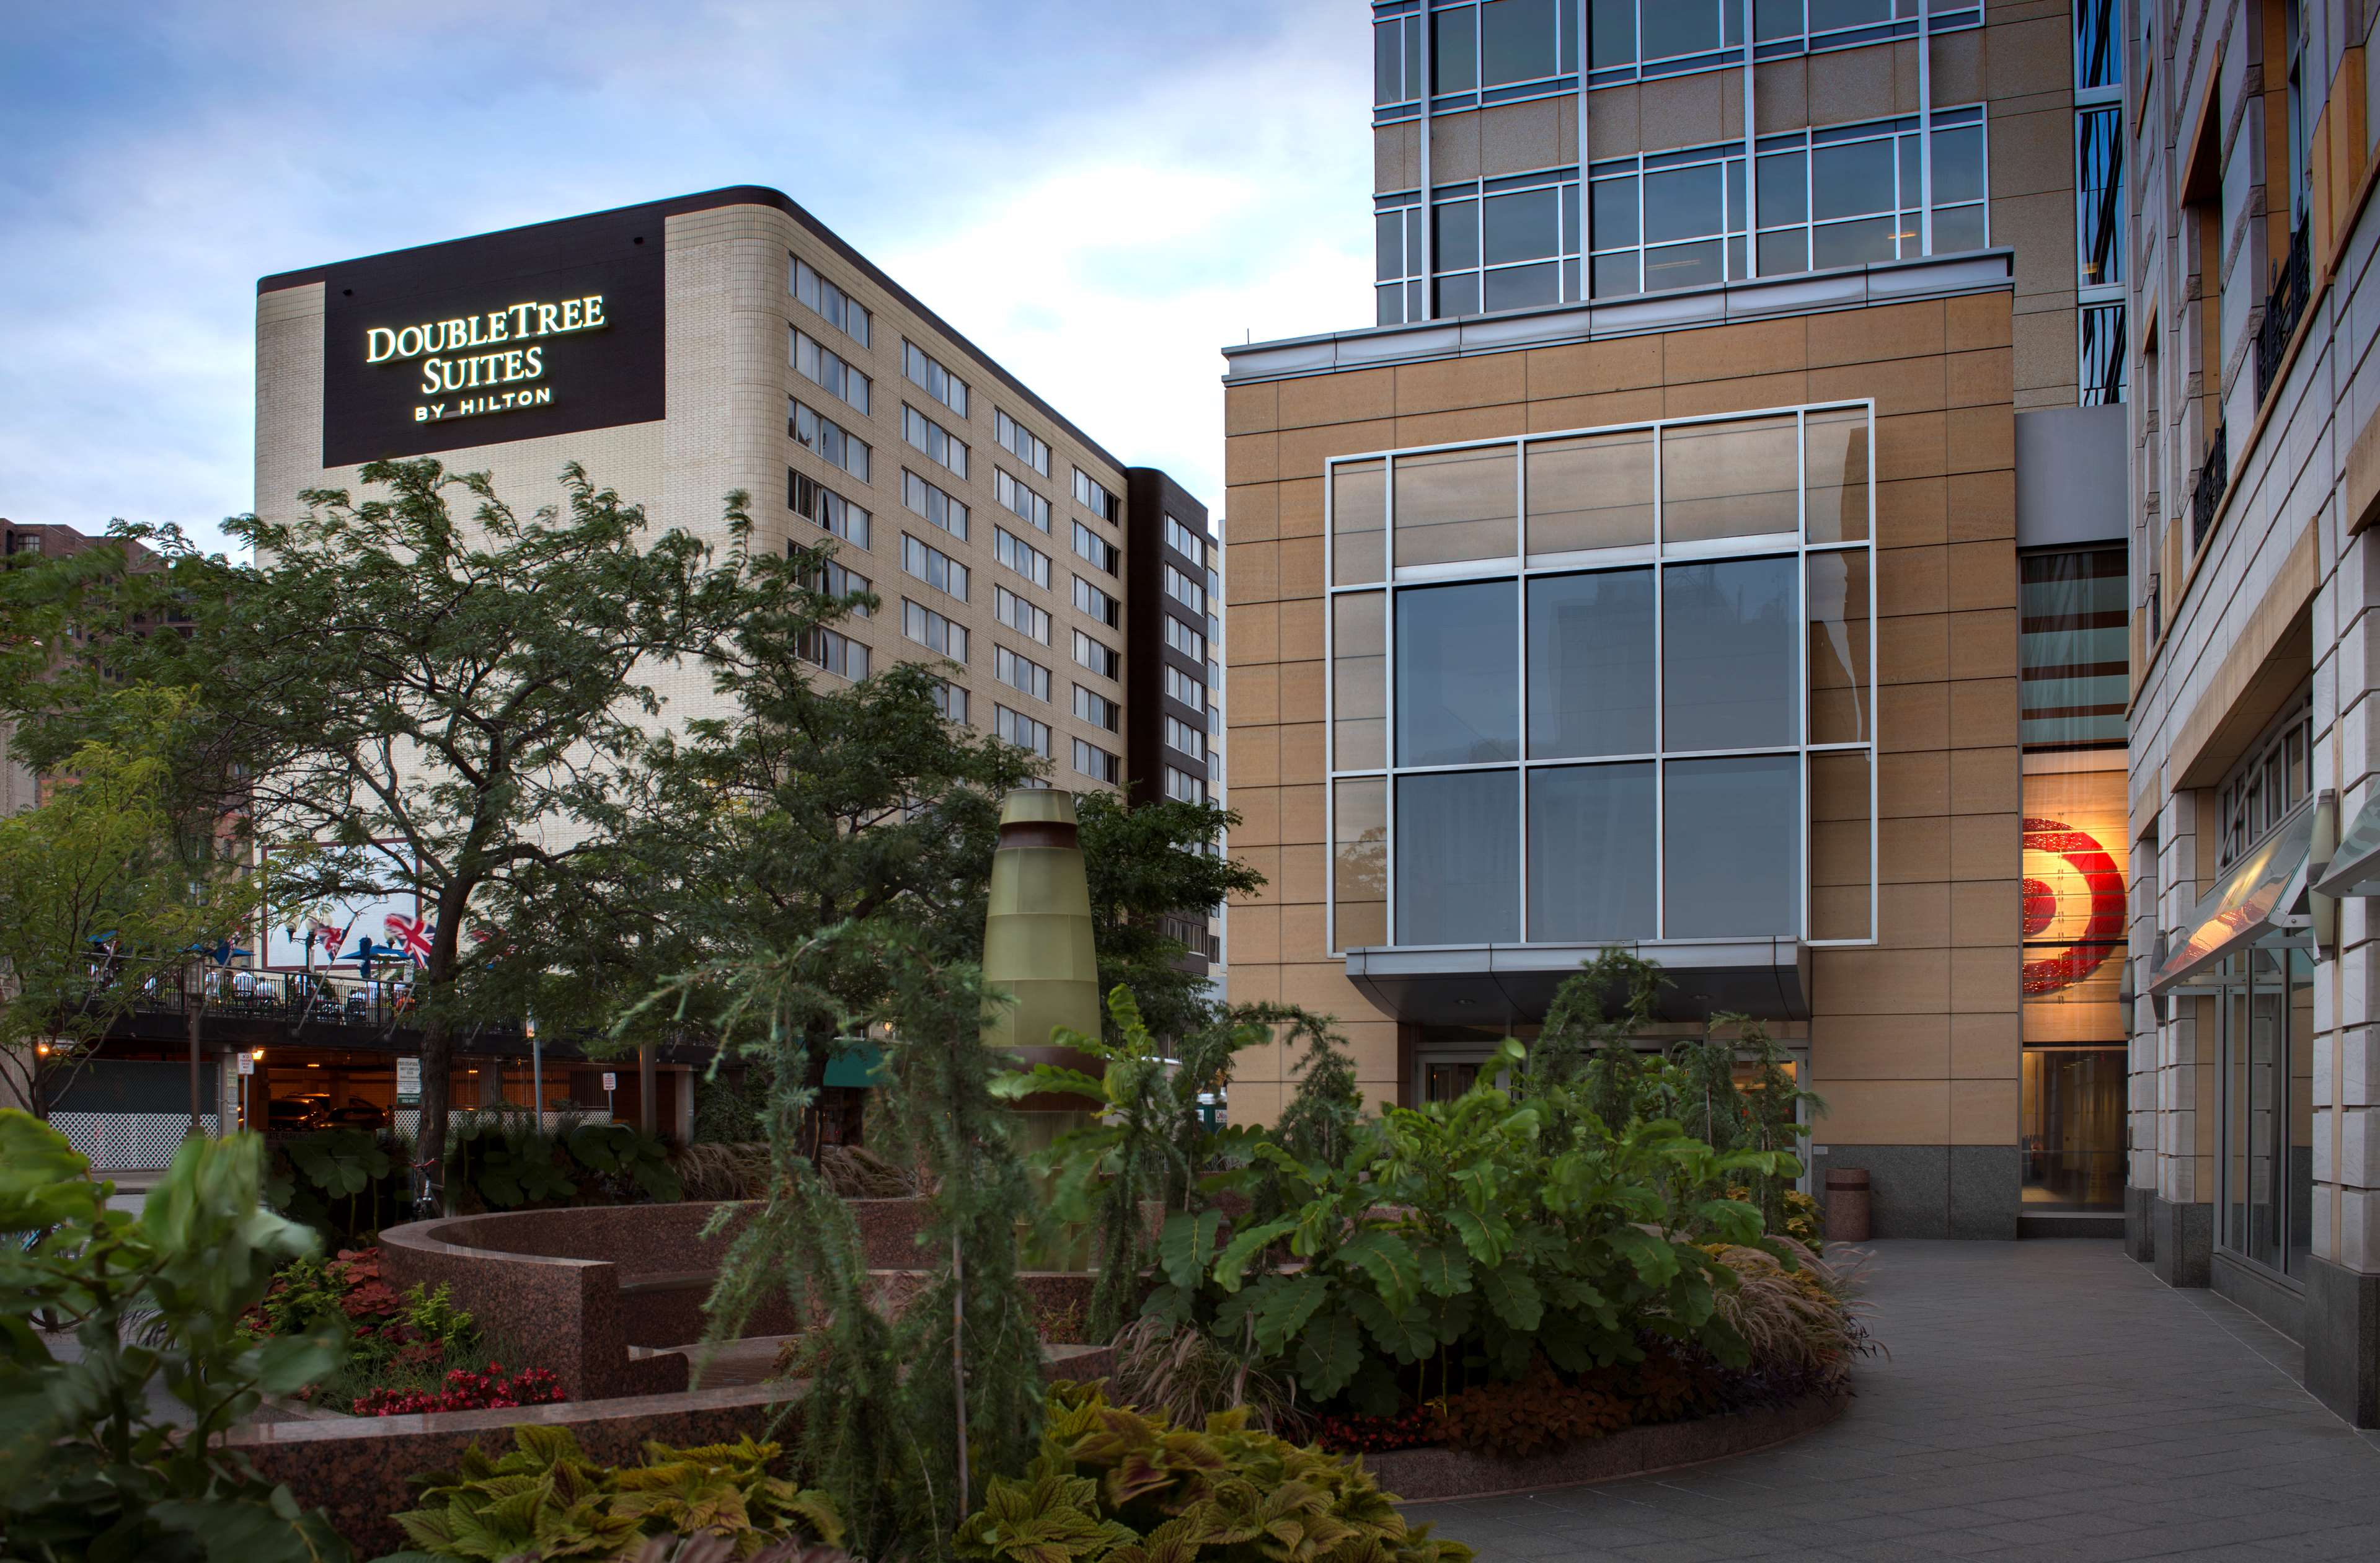 DoubleTree Suites by Hilton Hotel Minneapolis image 0